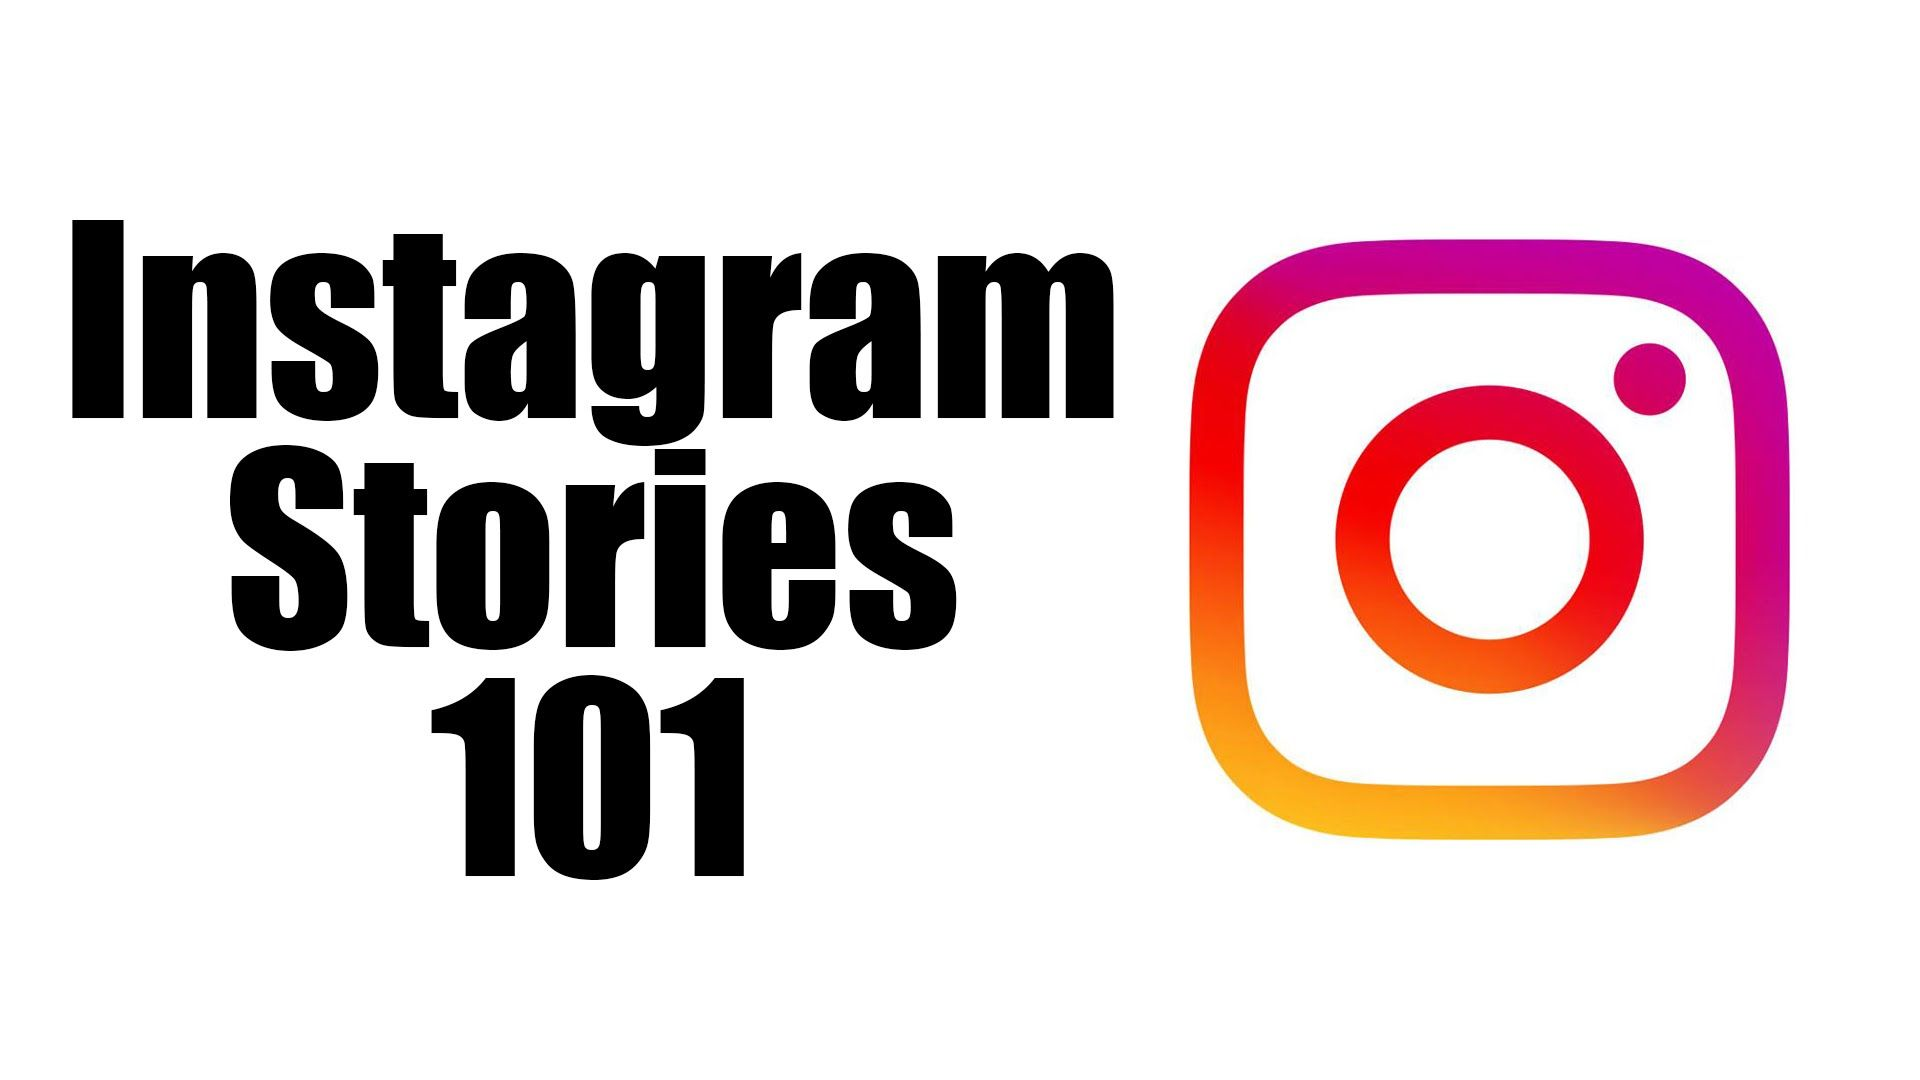 6 Brands Crushing It with Instagram Stories 1. Converse 2. Twitter 3. Nordstrom  Rack 4. Game of Thrones 5. Crossfit 6. Taco Bell  uksoftech e2cecaf4f